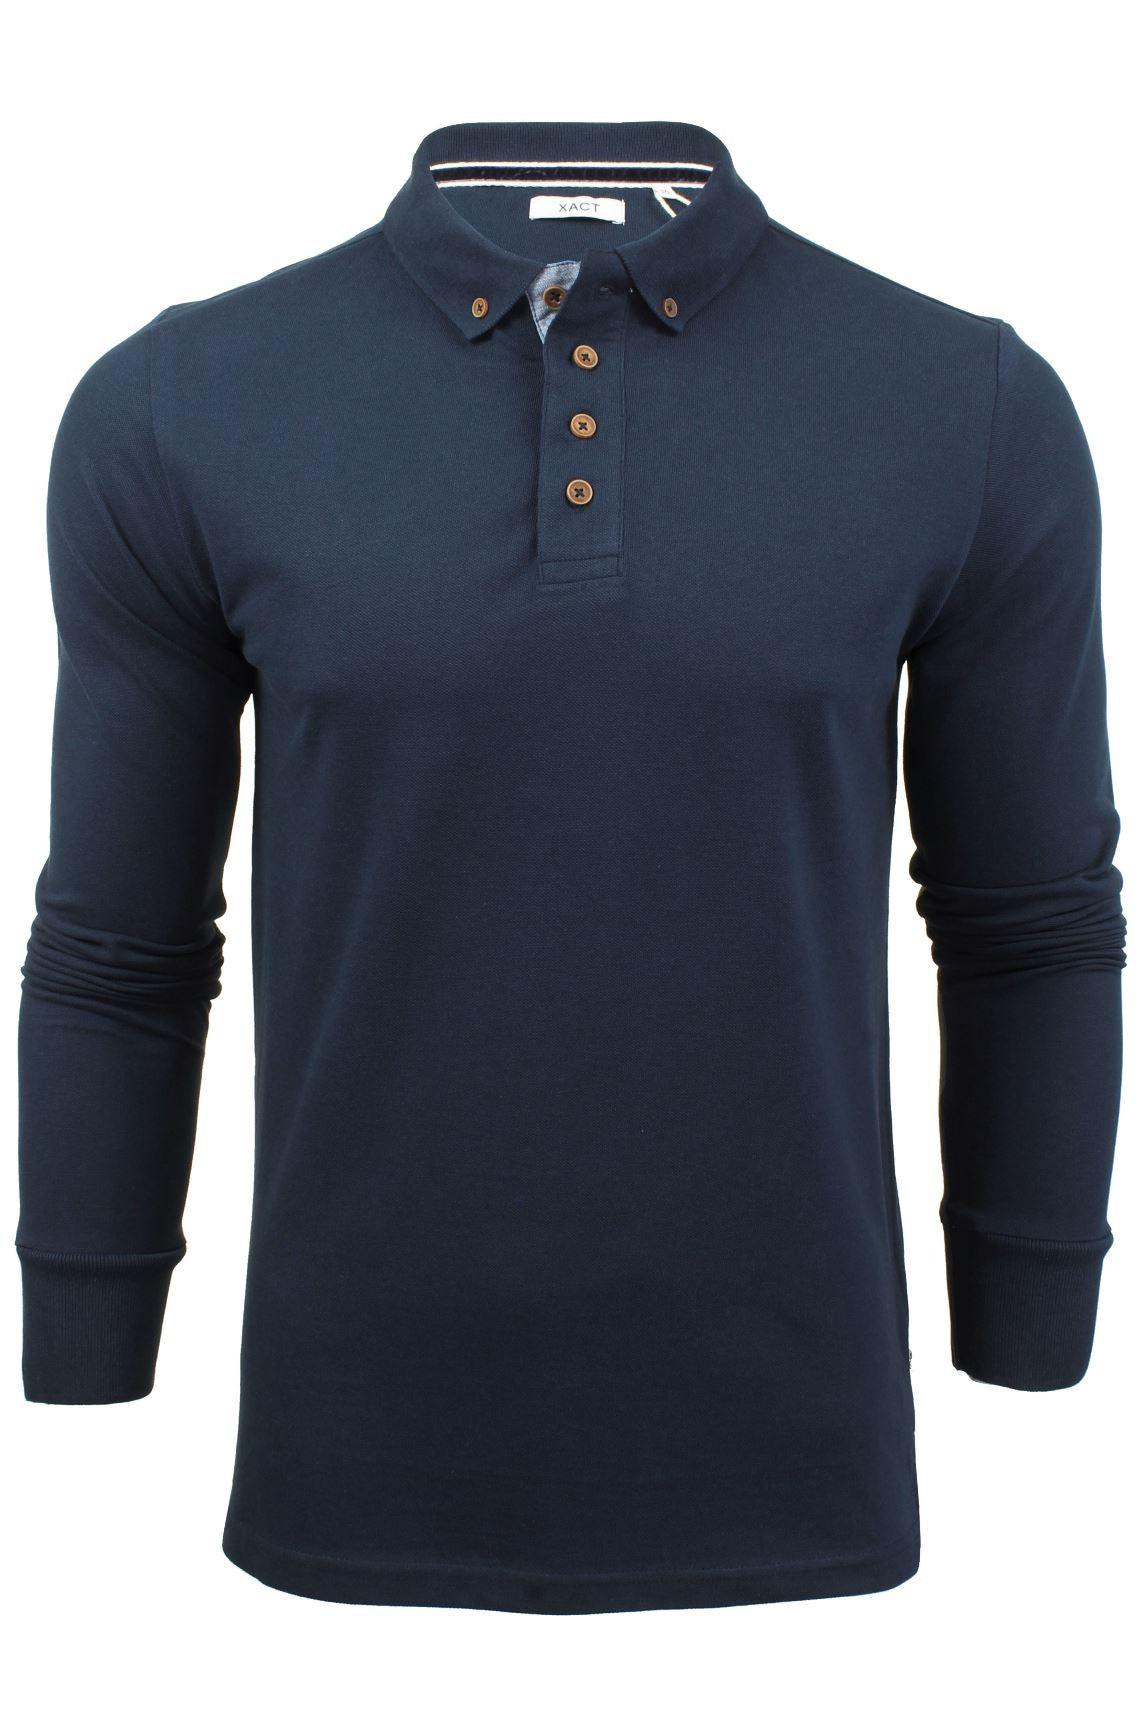 Mens Polo T-Shirt by Xact Pique Long Sleeved-Main Image